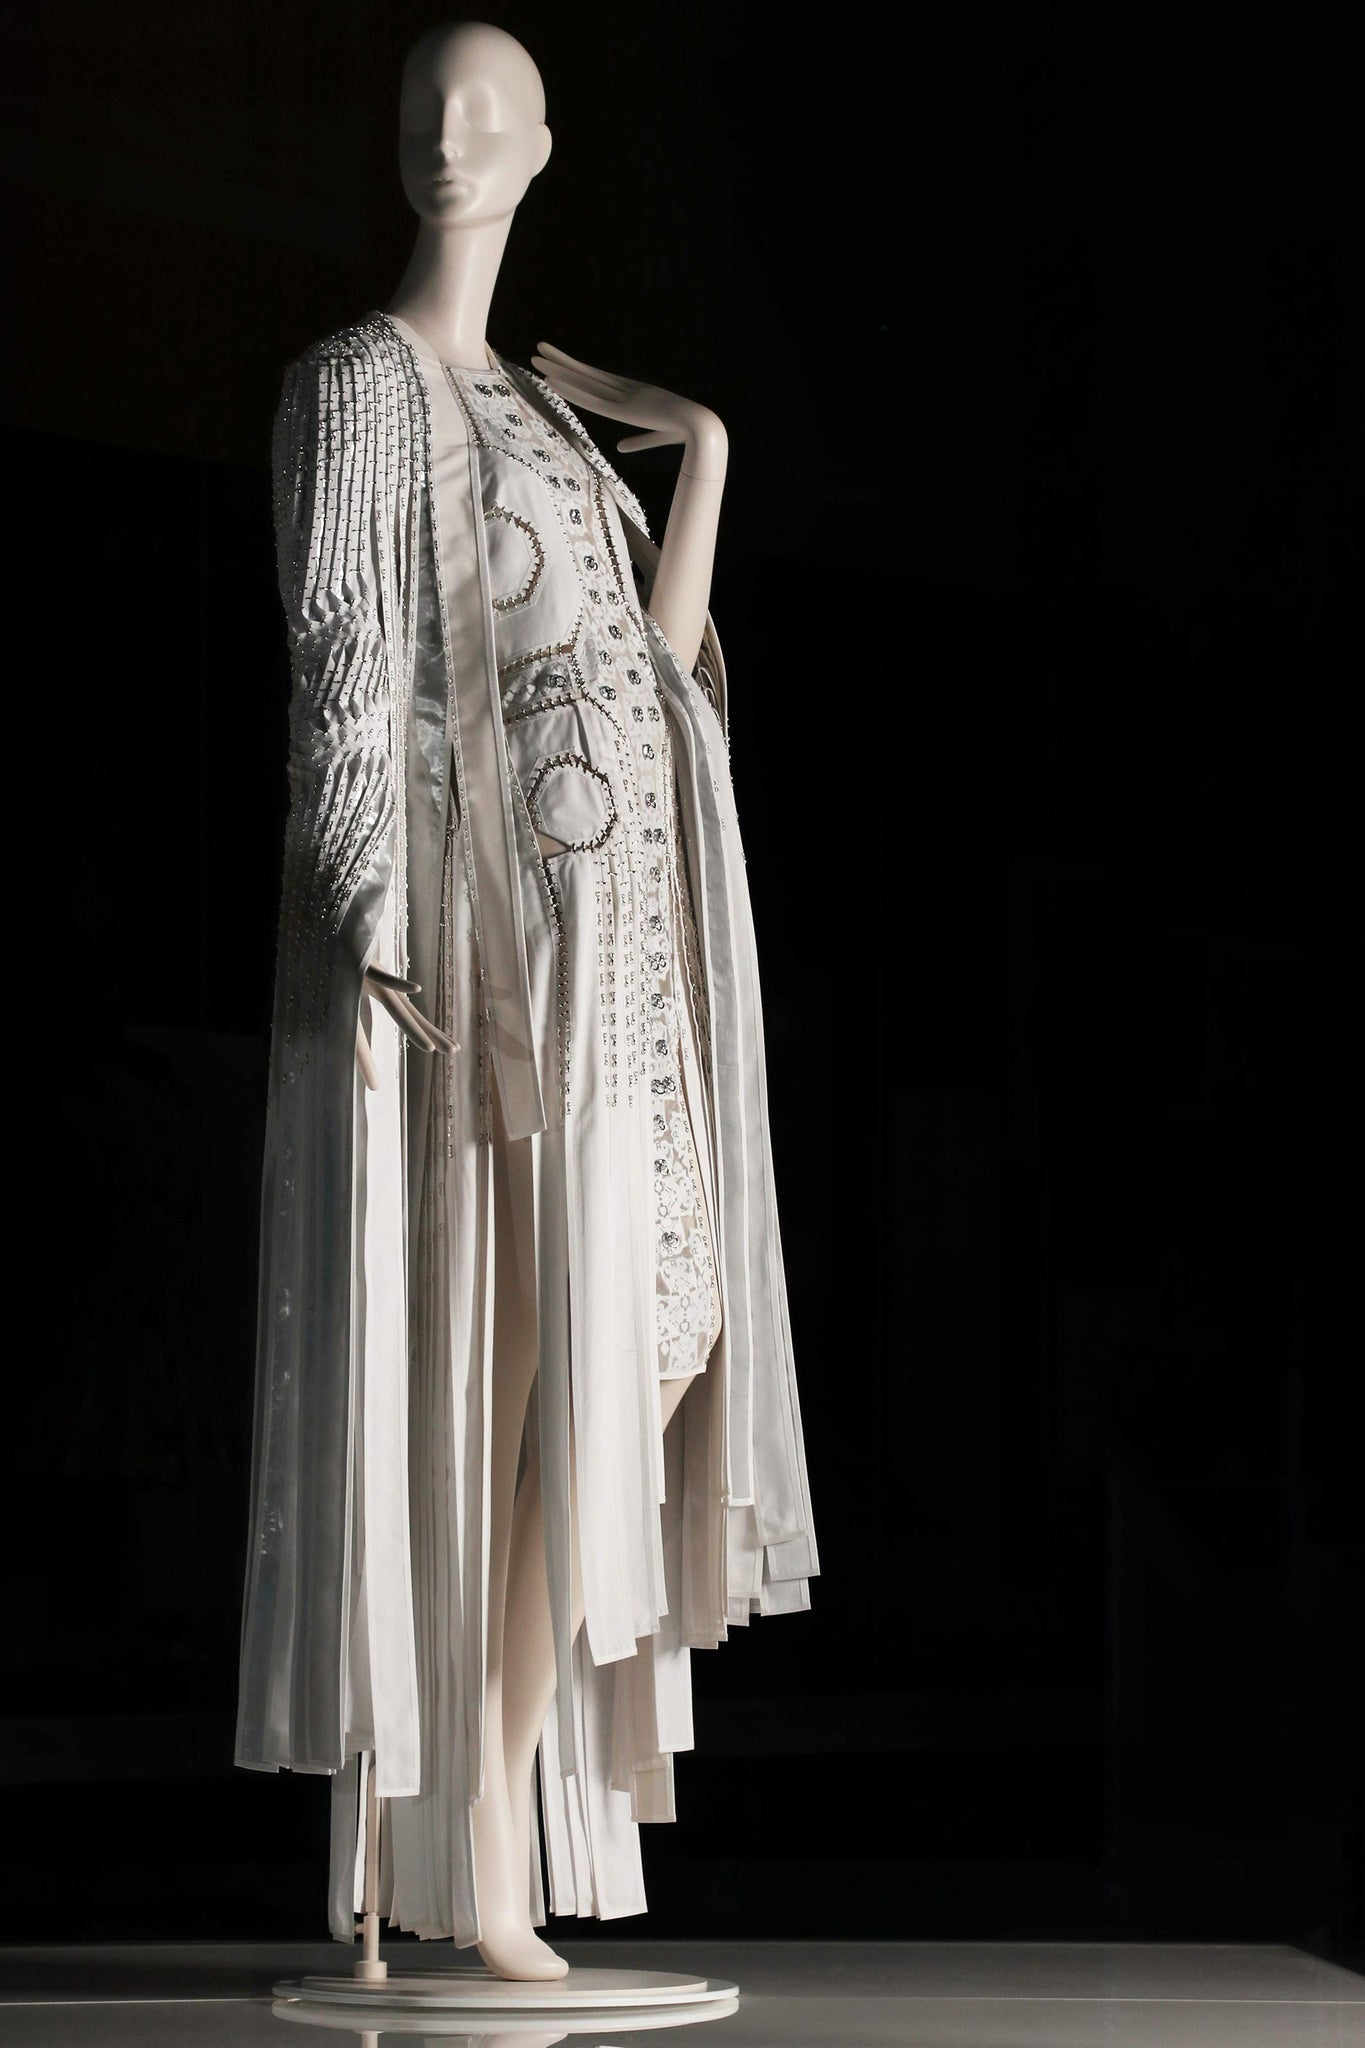 The Florentine Dress on display at The National Museum of Scotland